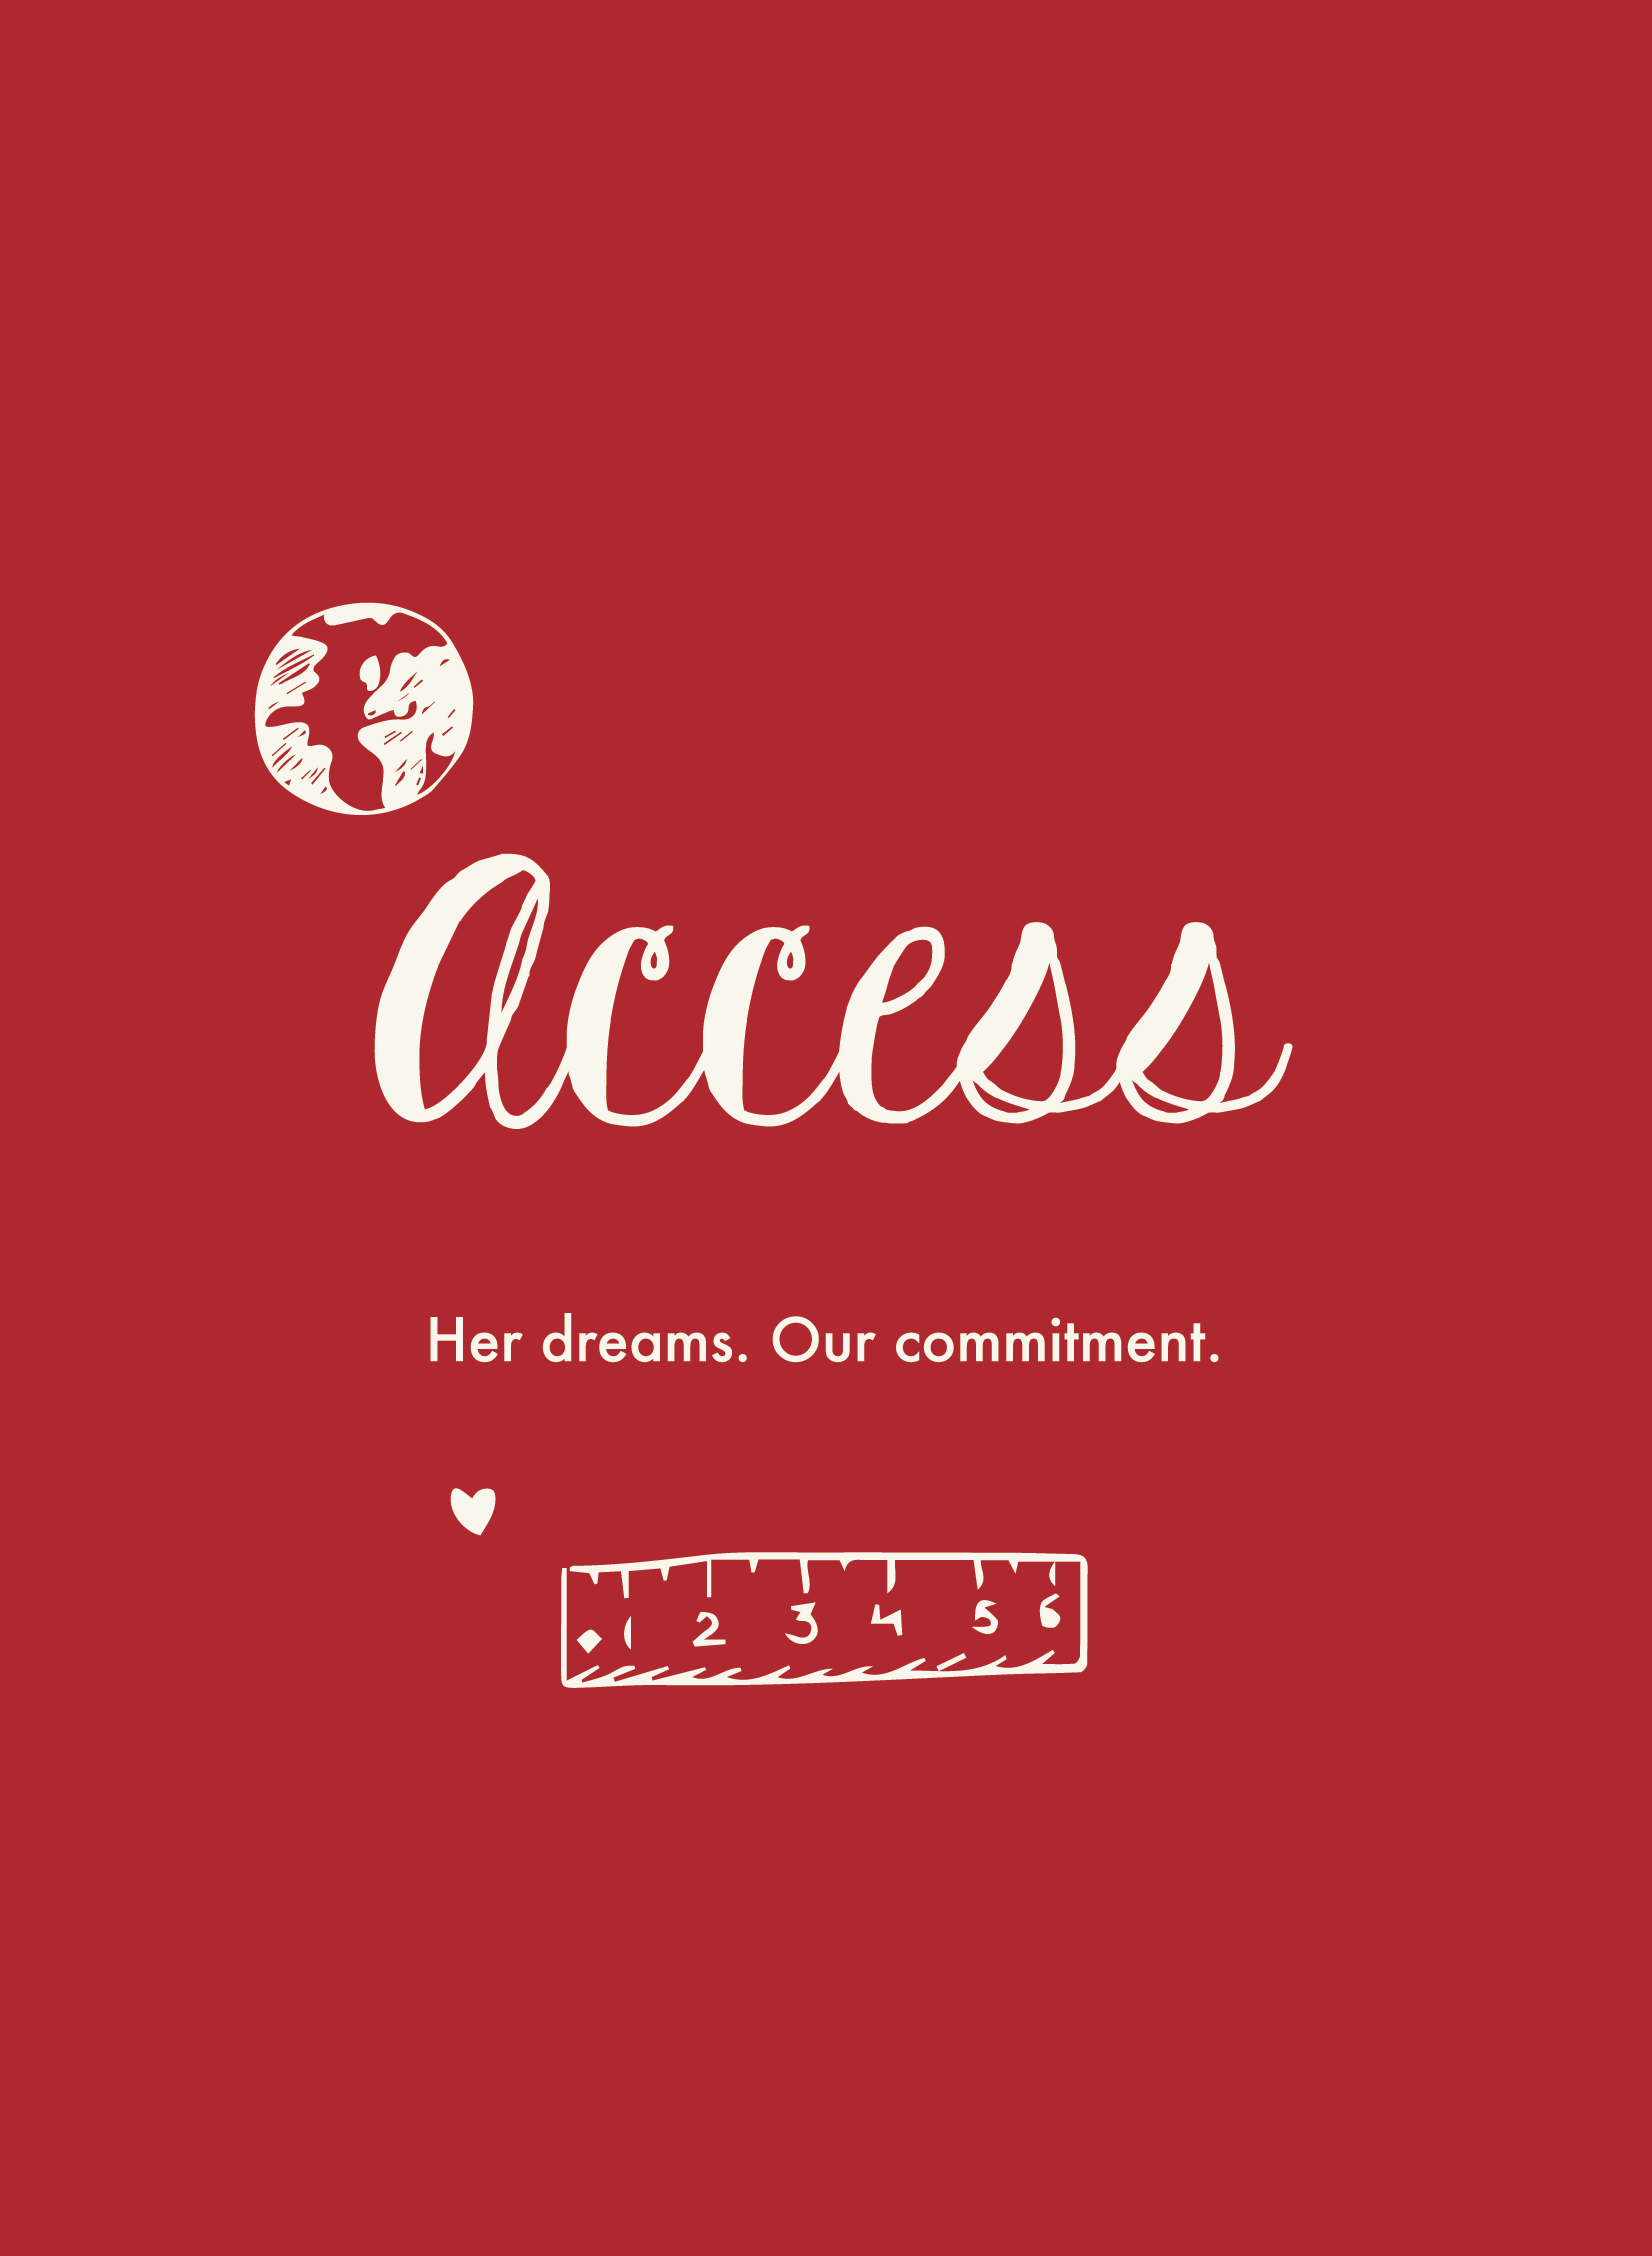 1516_Admissions_Access-01.png